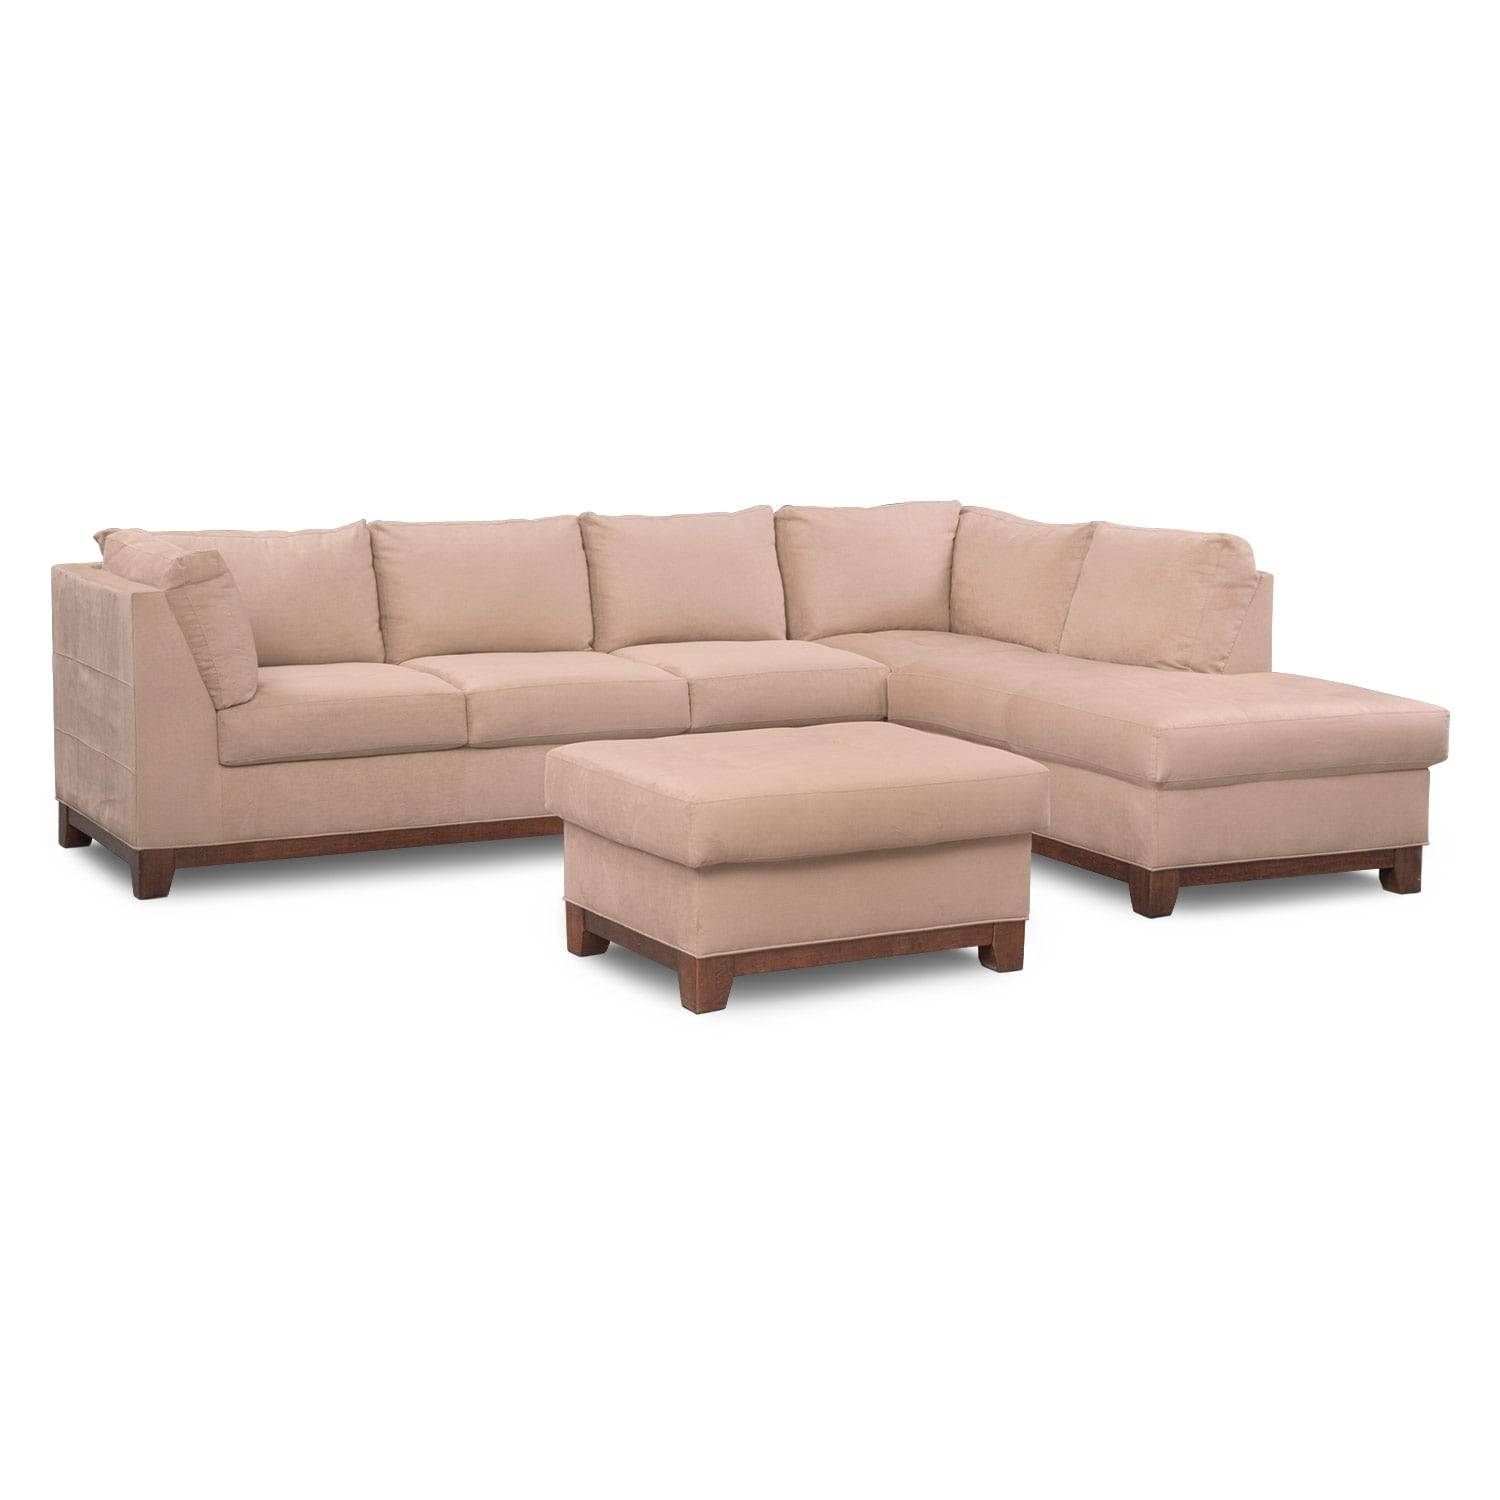 Soho 2-Piece Sectional with Right-Facing Chaise and Ottoman - Cobblestone